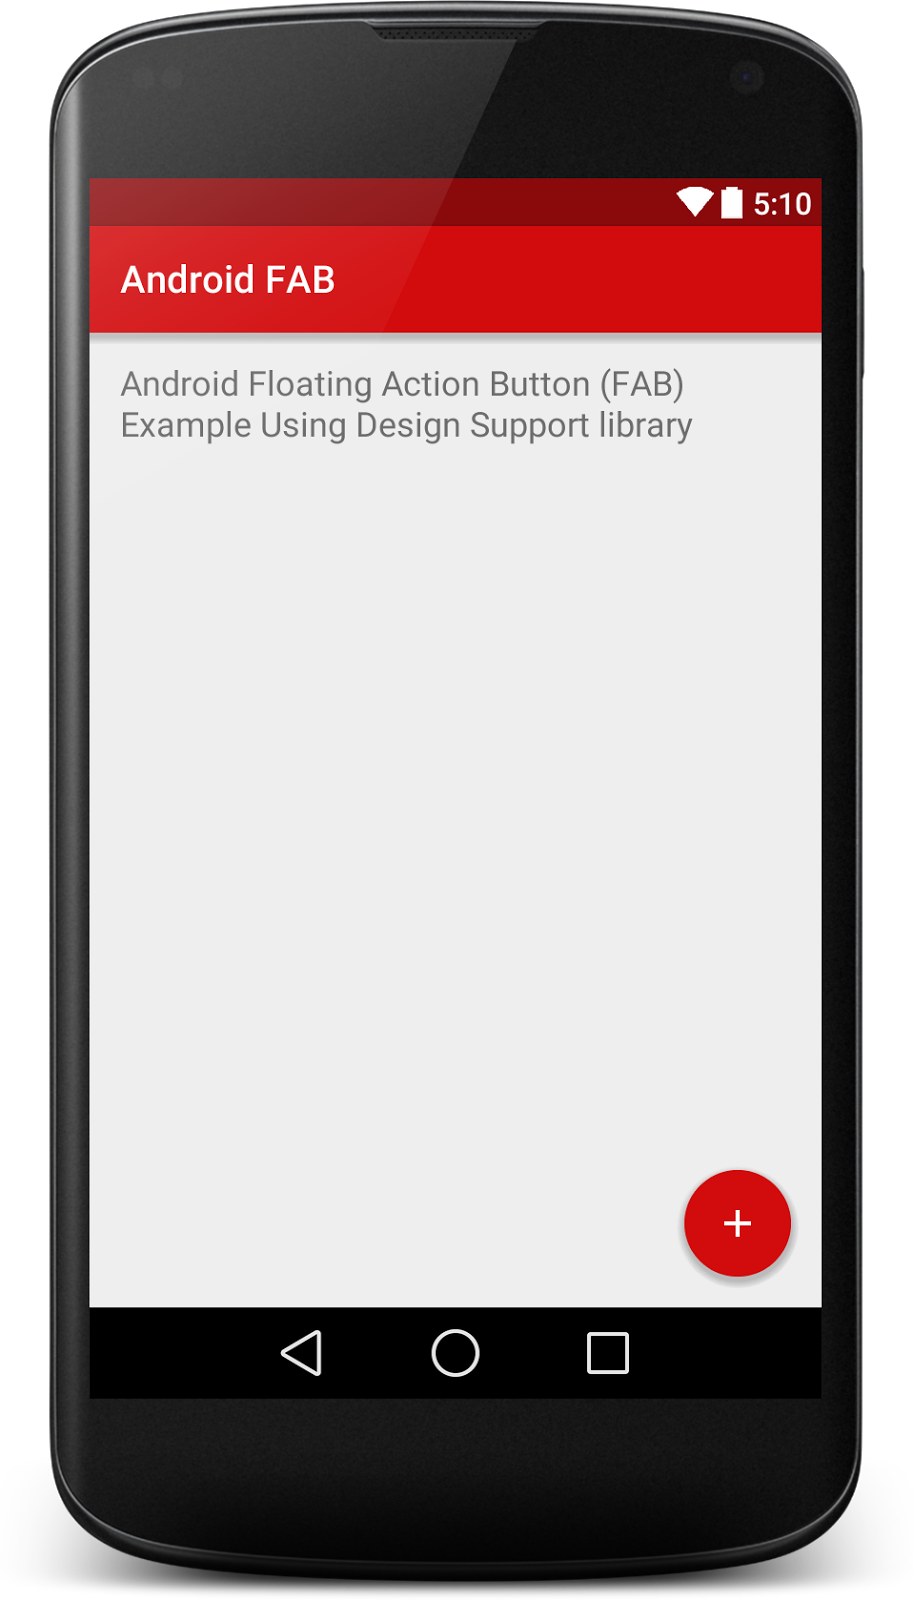 Floating Action Button (FAB) Using Android Design Support Library